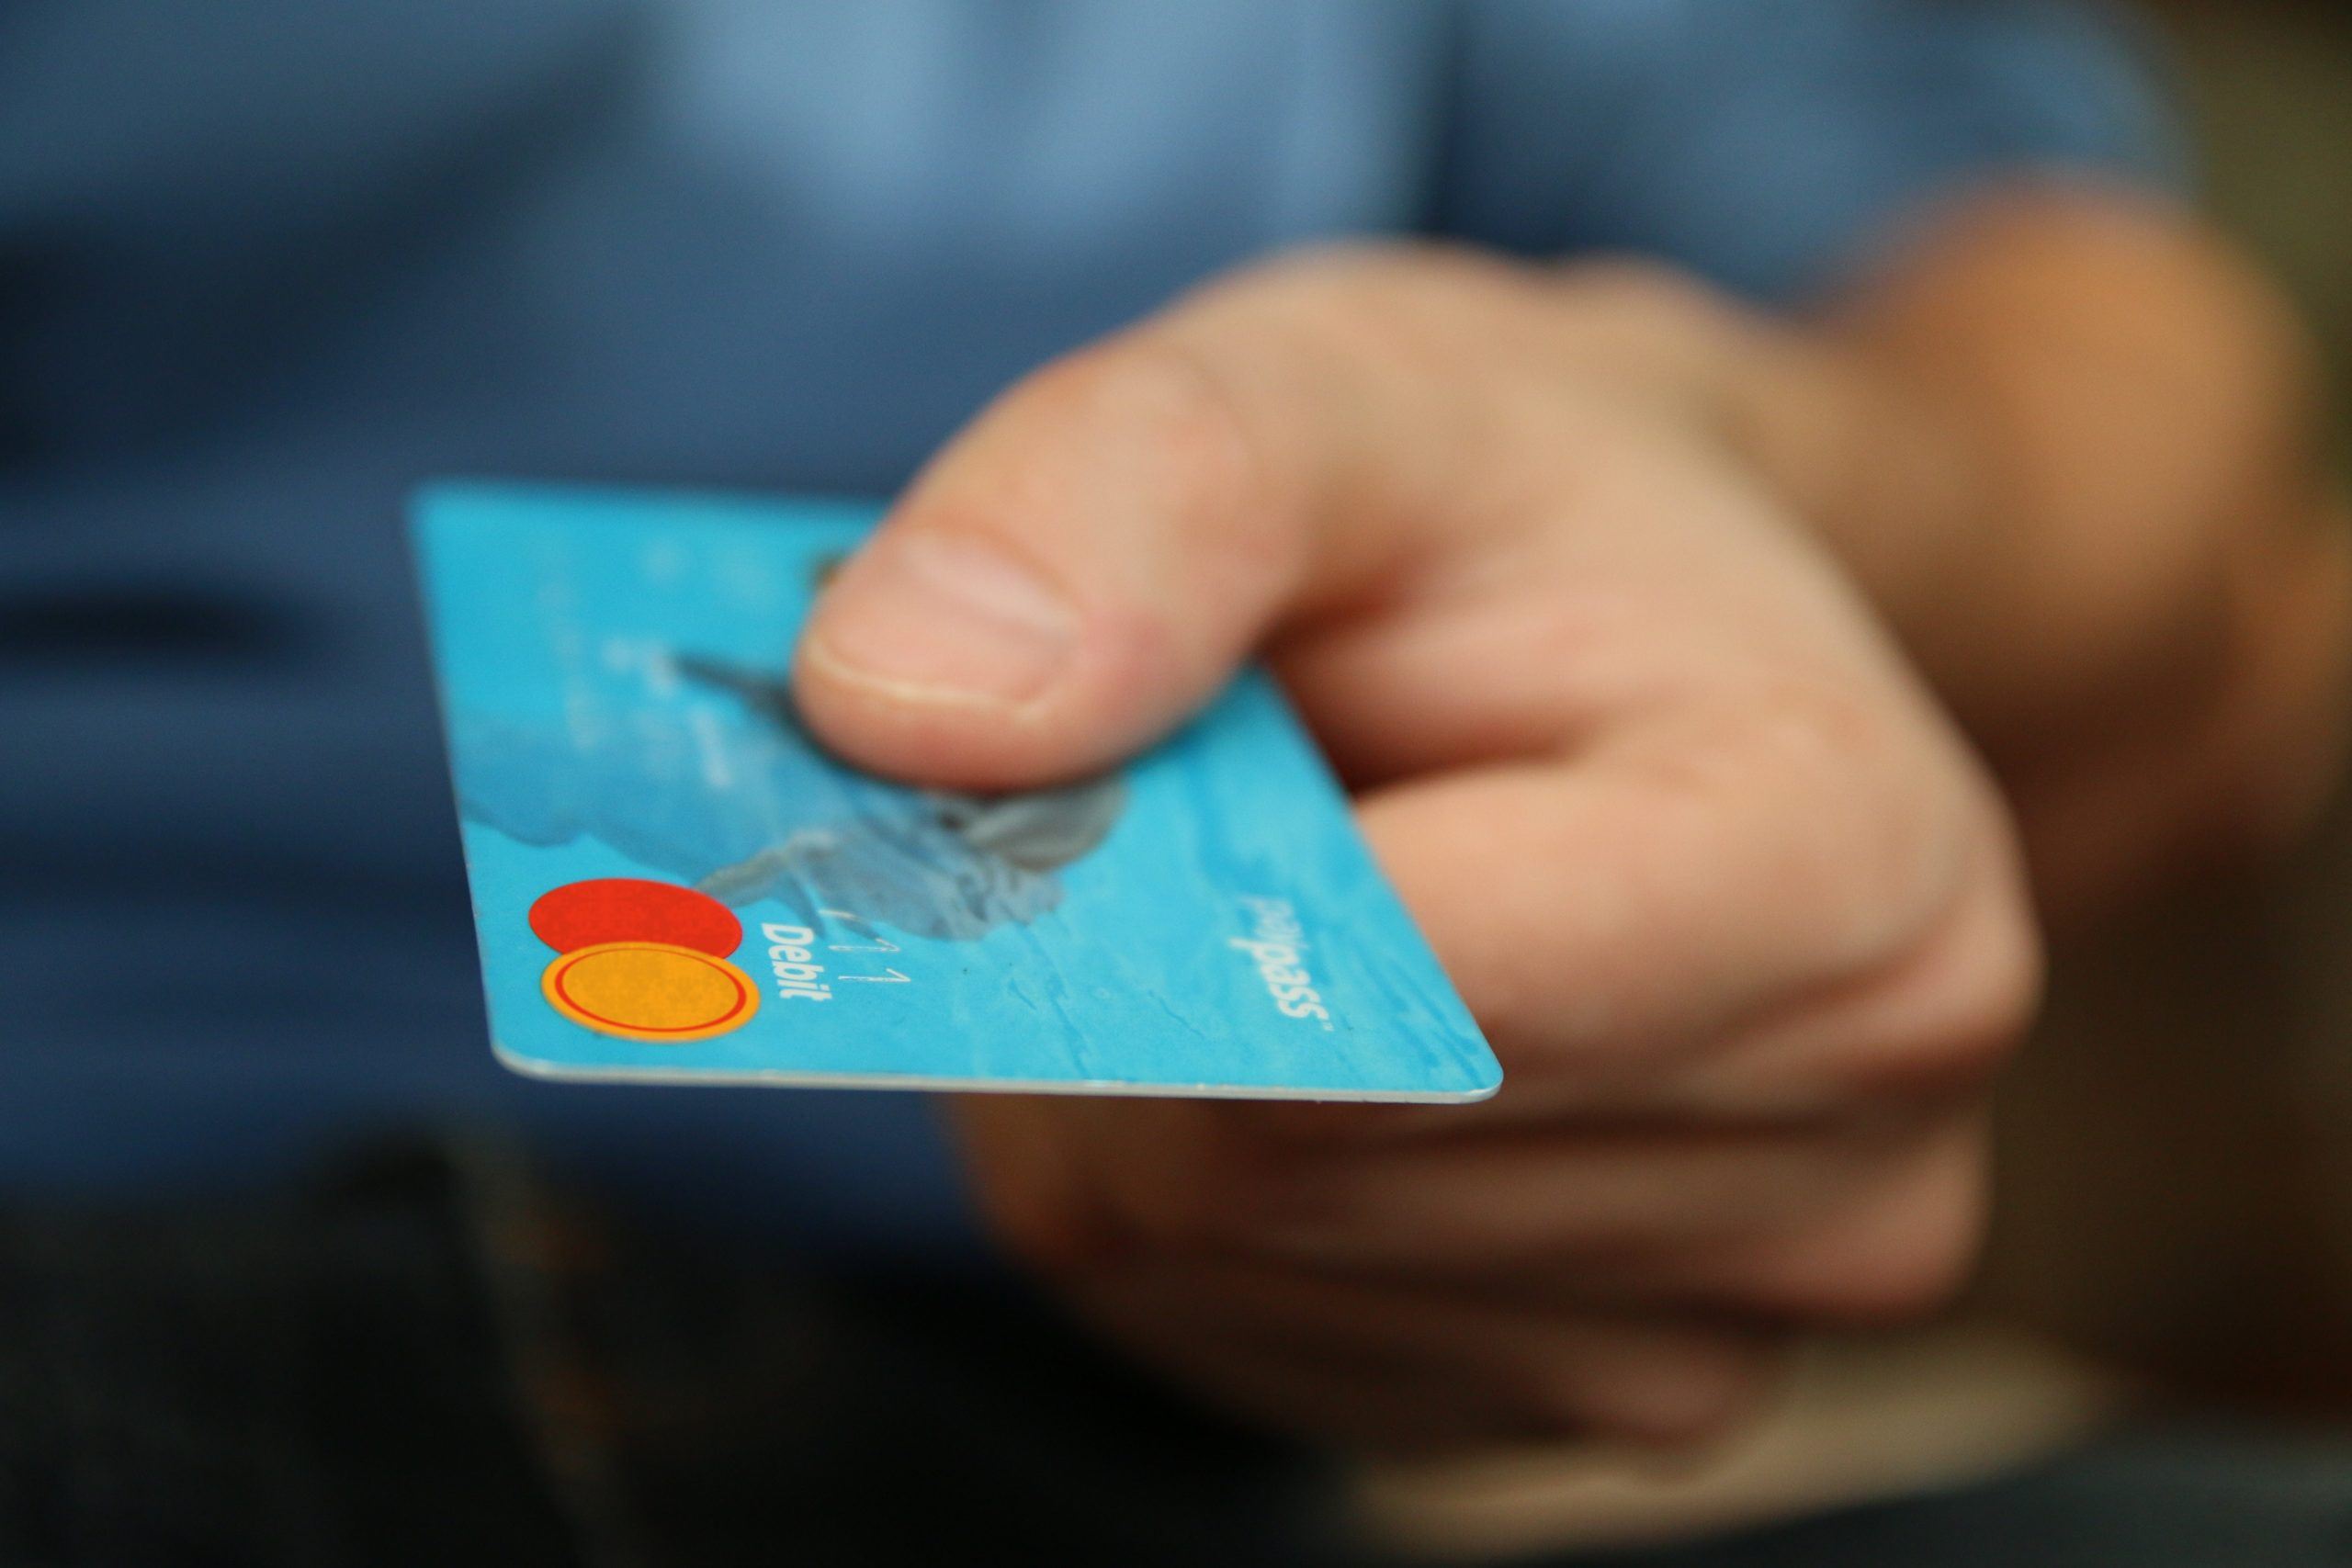 focus shot of man's hand holding out a debit card